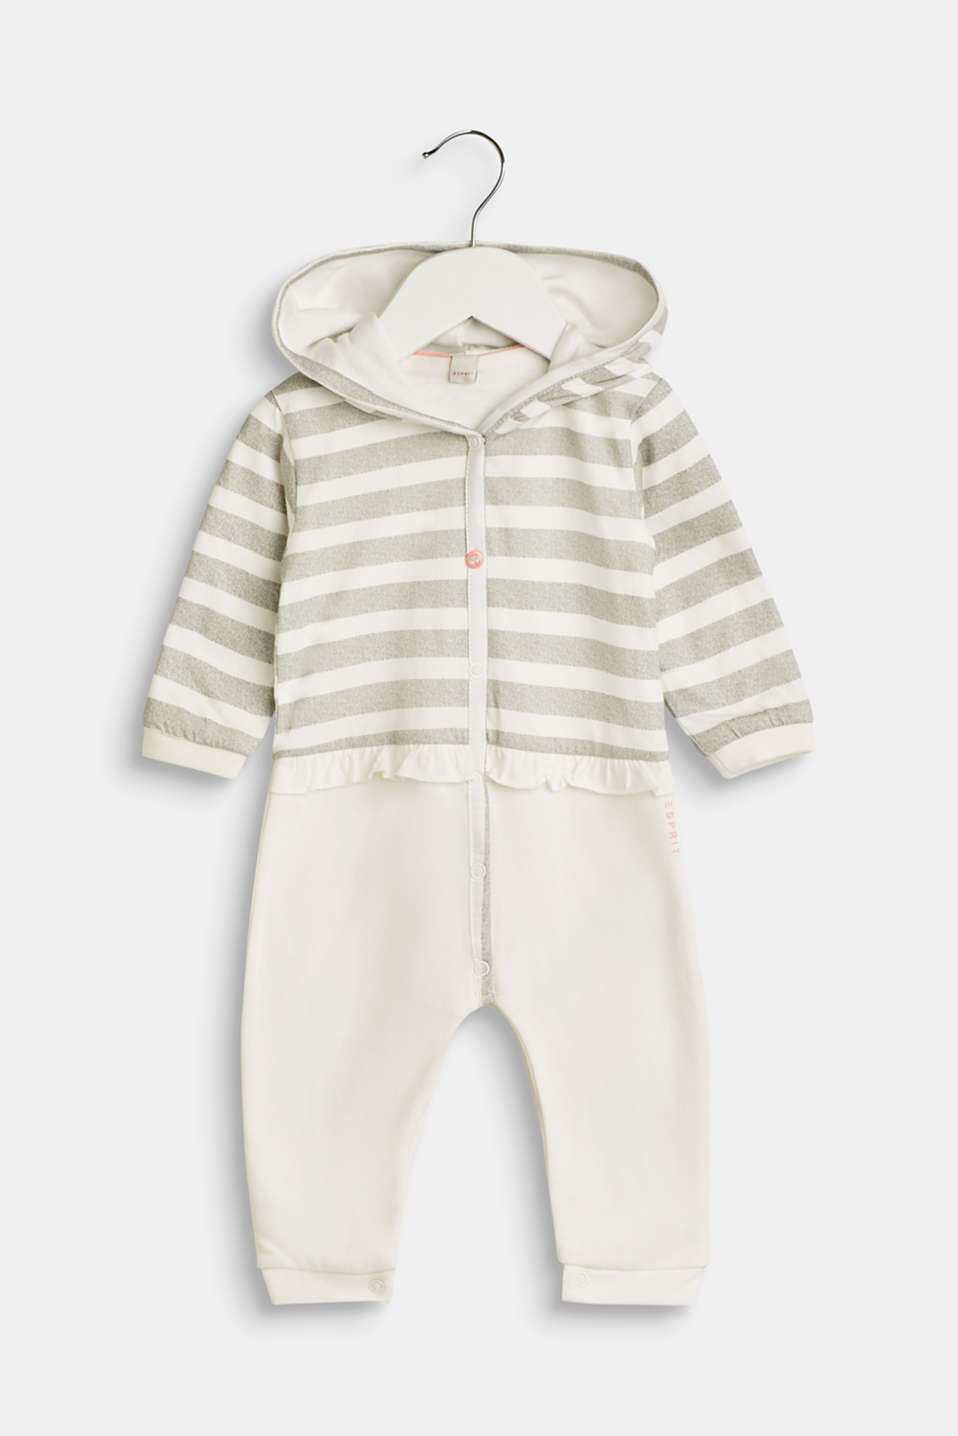 Esprit - Romper suit made of sweatshirt fabric containing organic cotton